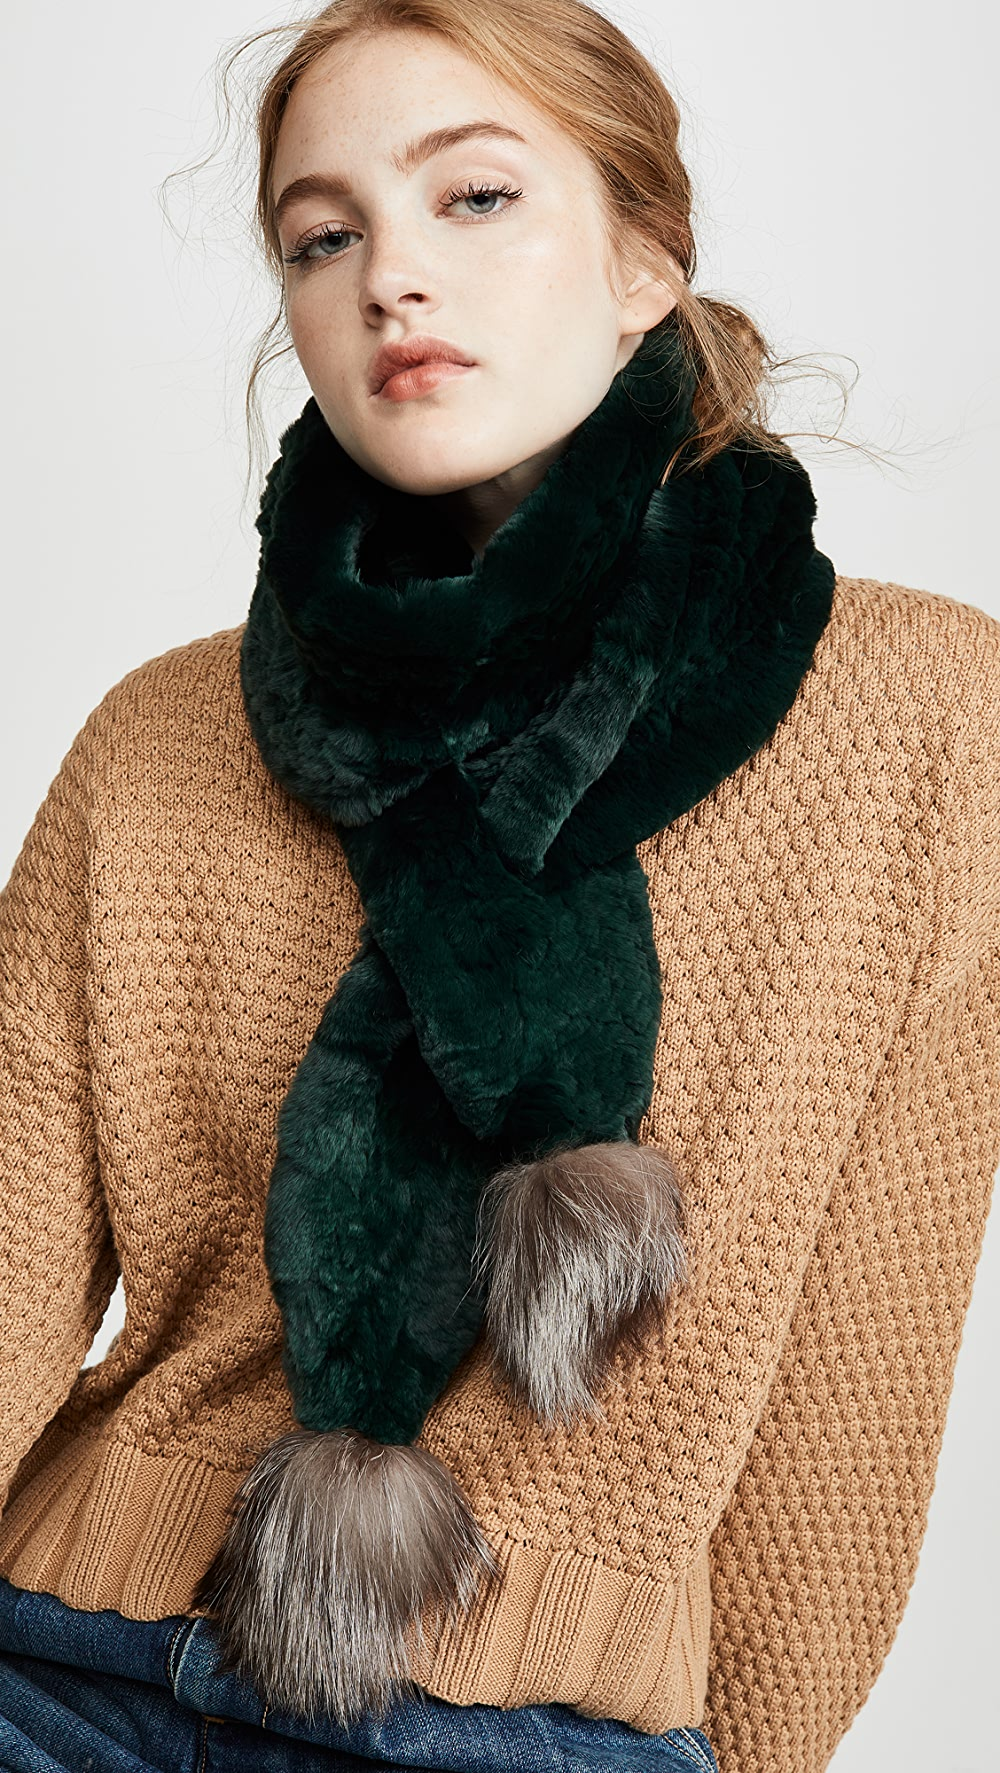 Earnest Adrienne Landau - Knit Rabbit Scarf With Fox Poms Fixing Prices According To Quality Of Products